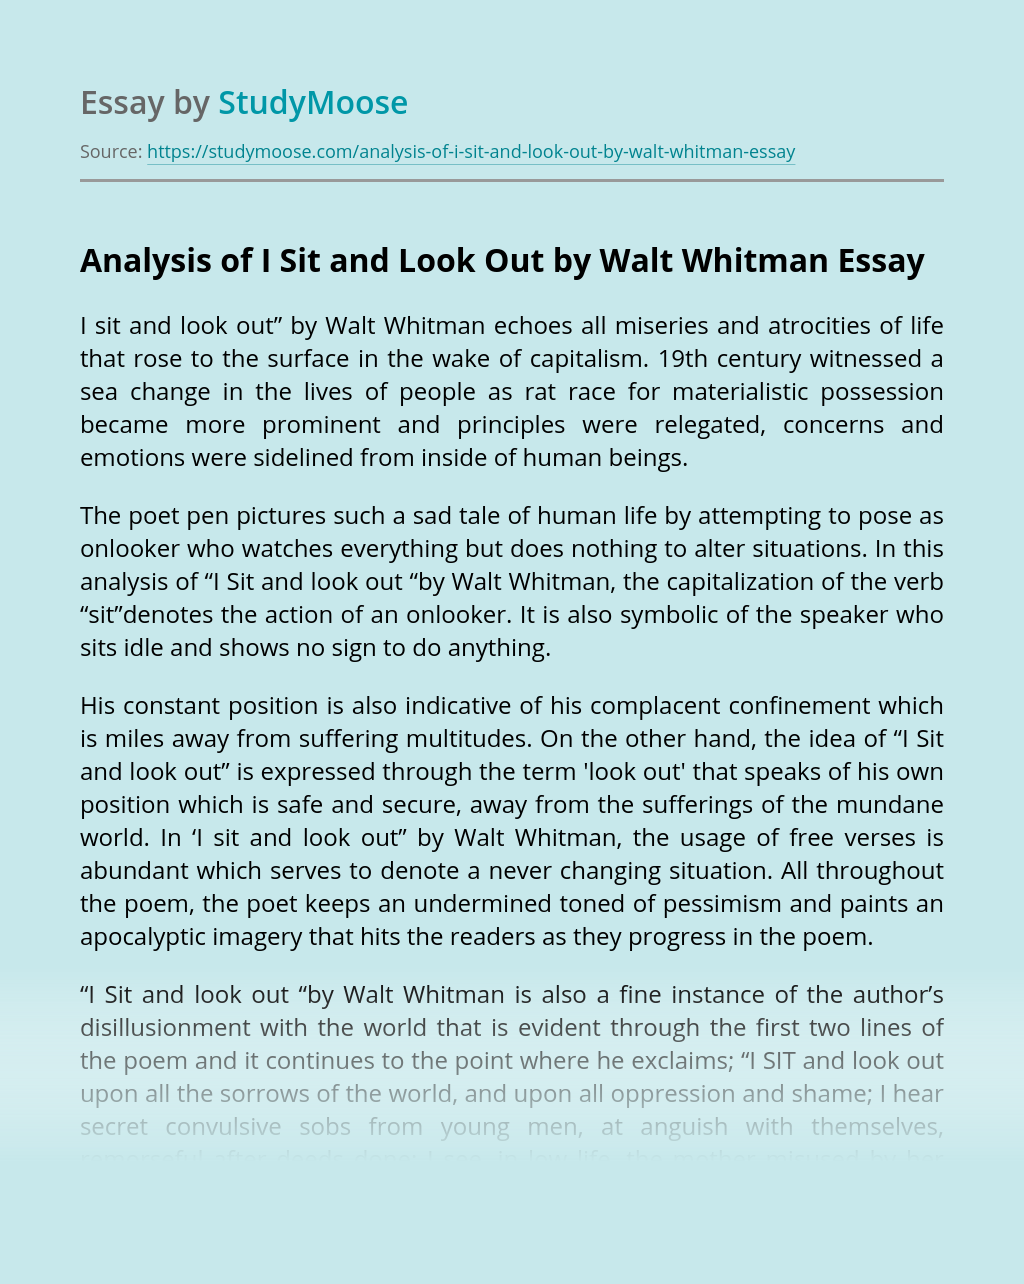 Analysis of I Sit and Look Out by Walt Whitman